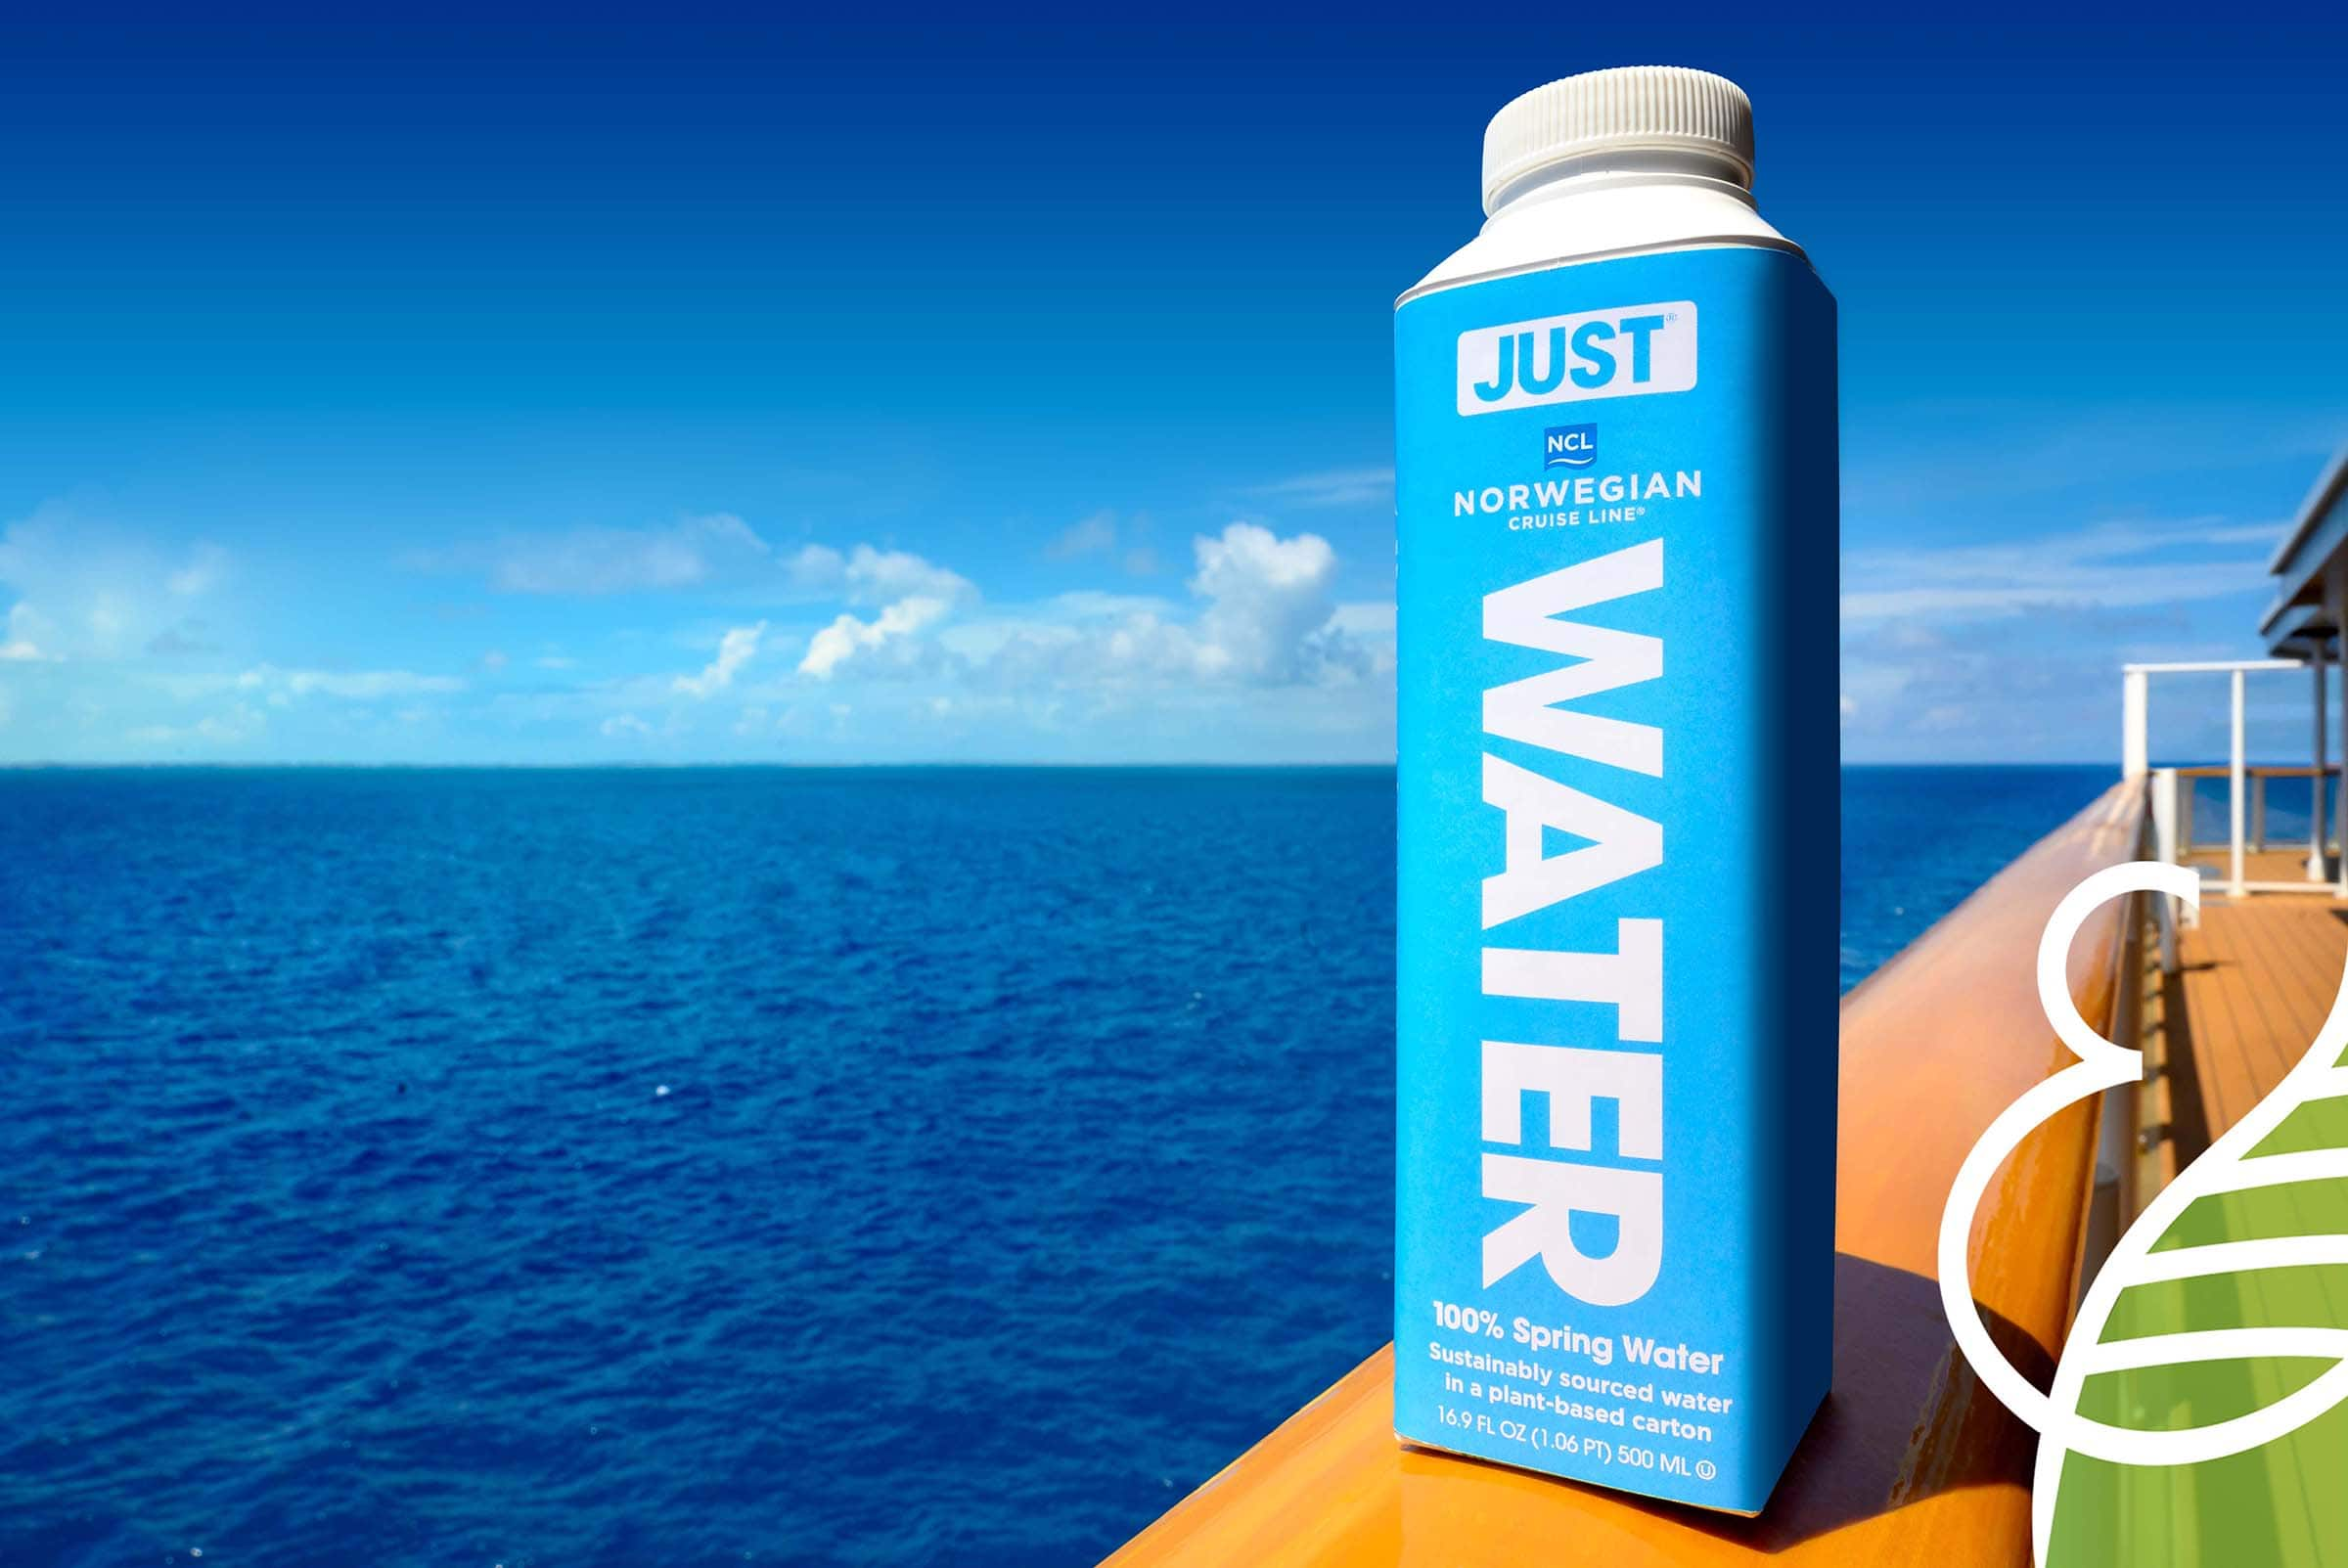 Norwegian Cruise Line Argentina has replaced all single-use plastic beverage bottles acros